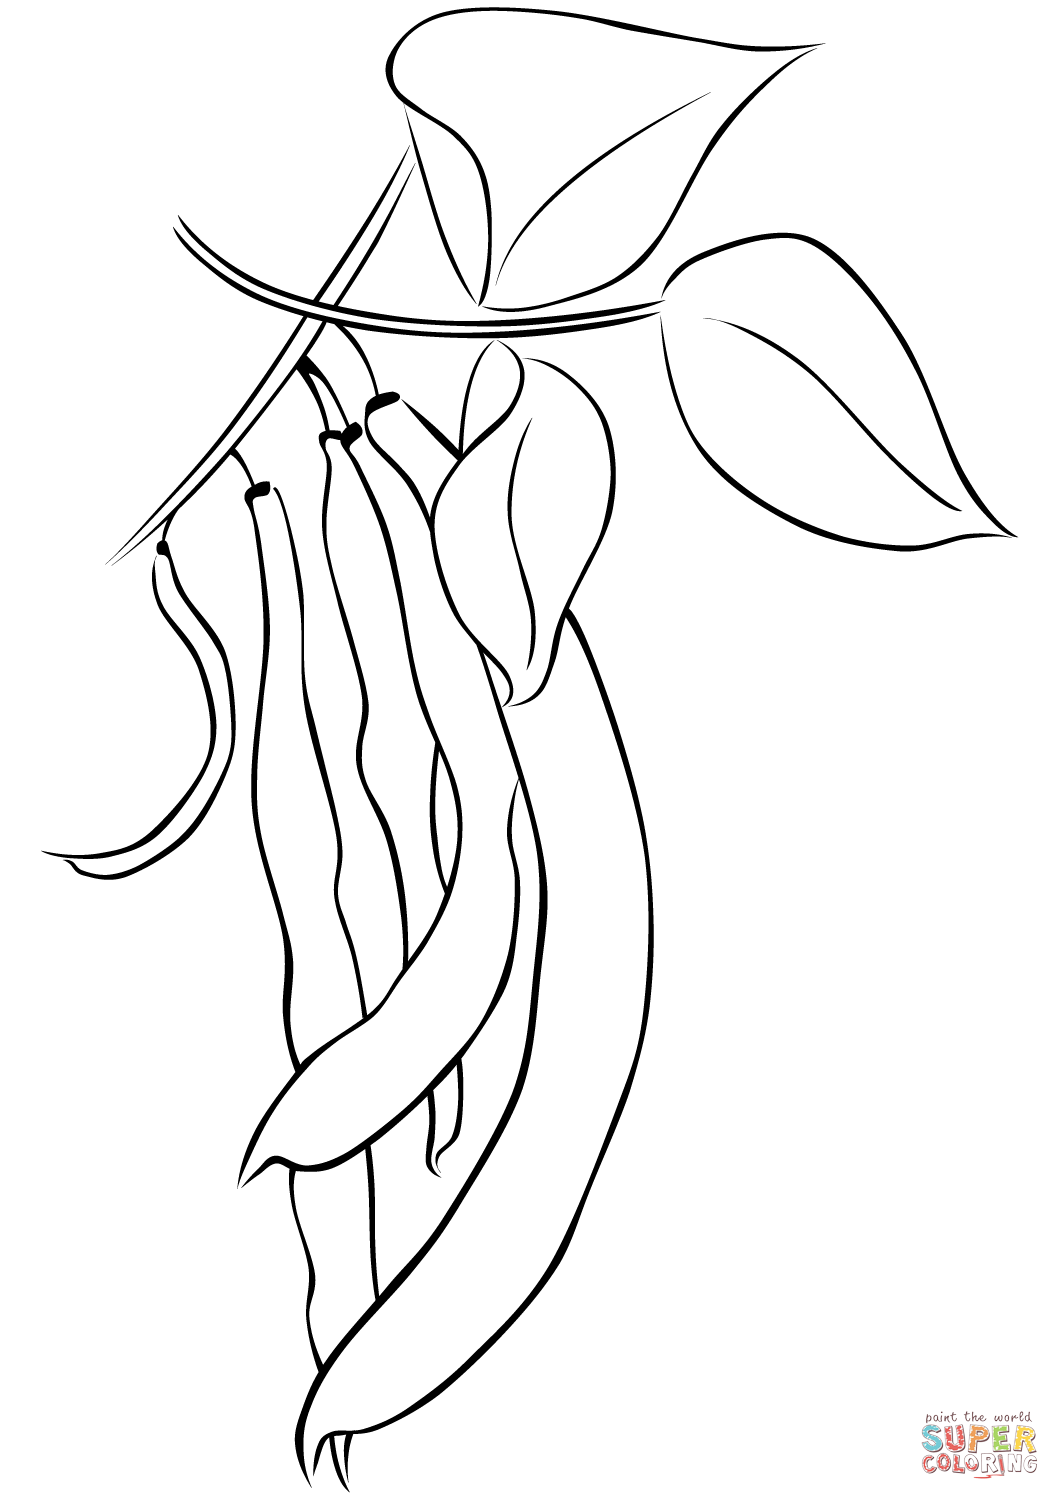 String Beans Drawing at GetDrawings.com | Free for ...